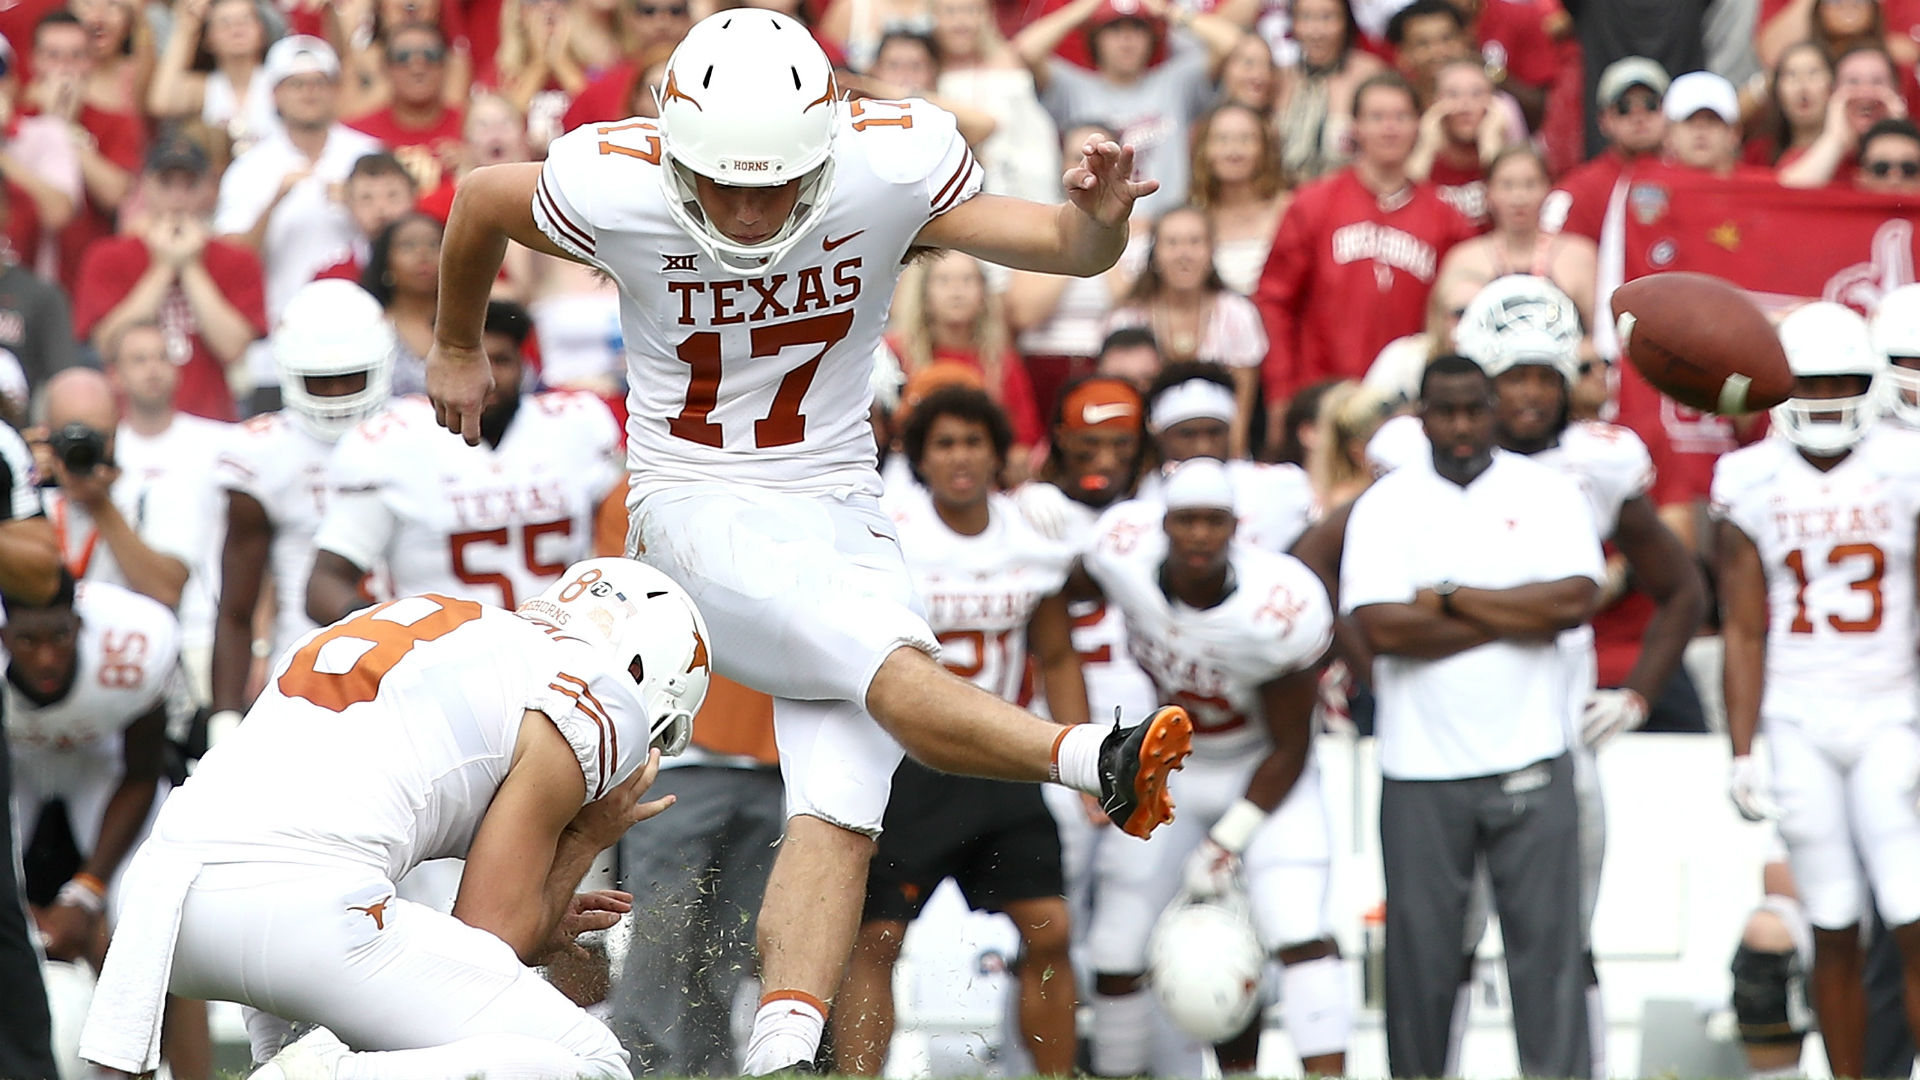 Three takeaways from No. 19 Texas' Red River victory over No. 7 Oklahoma